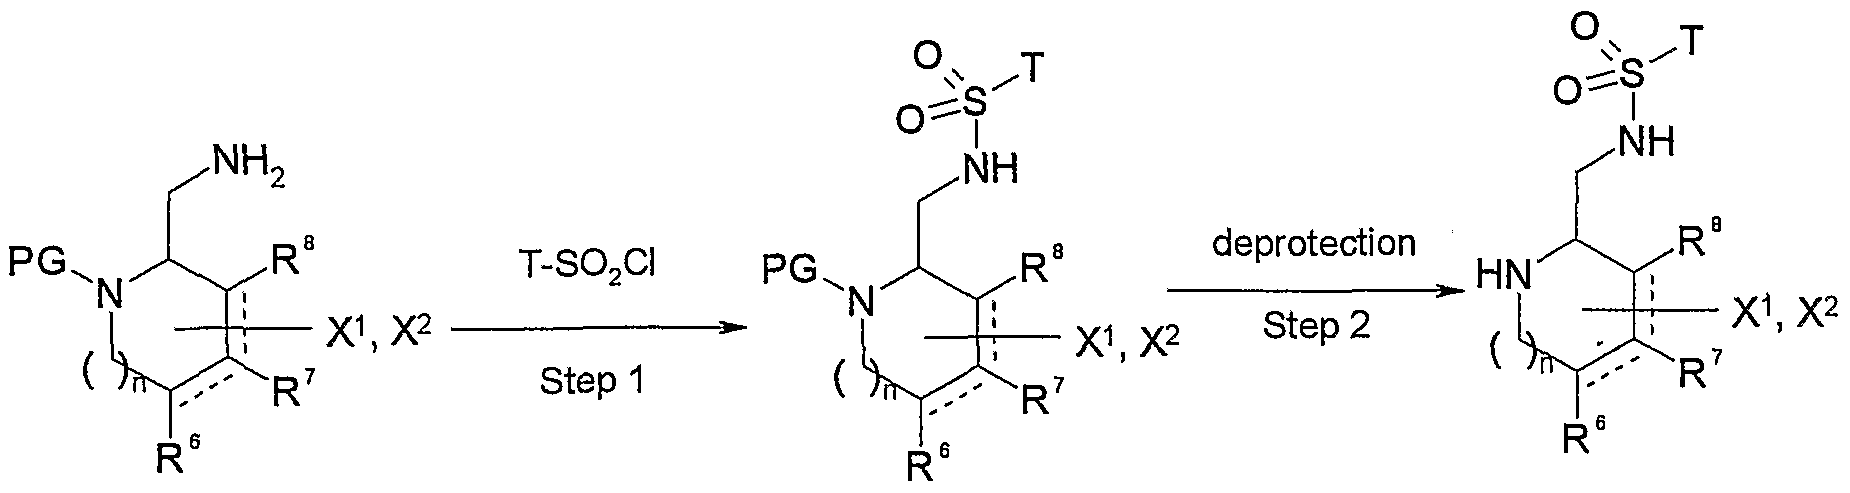 Synthesis of azides from amines reactions – Help Your Studies